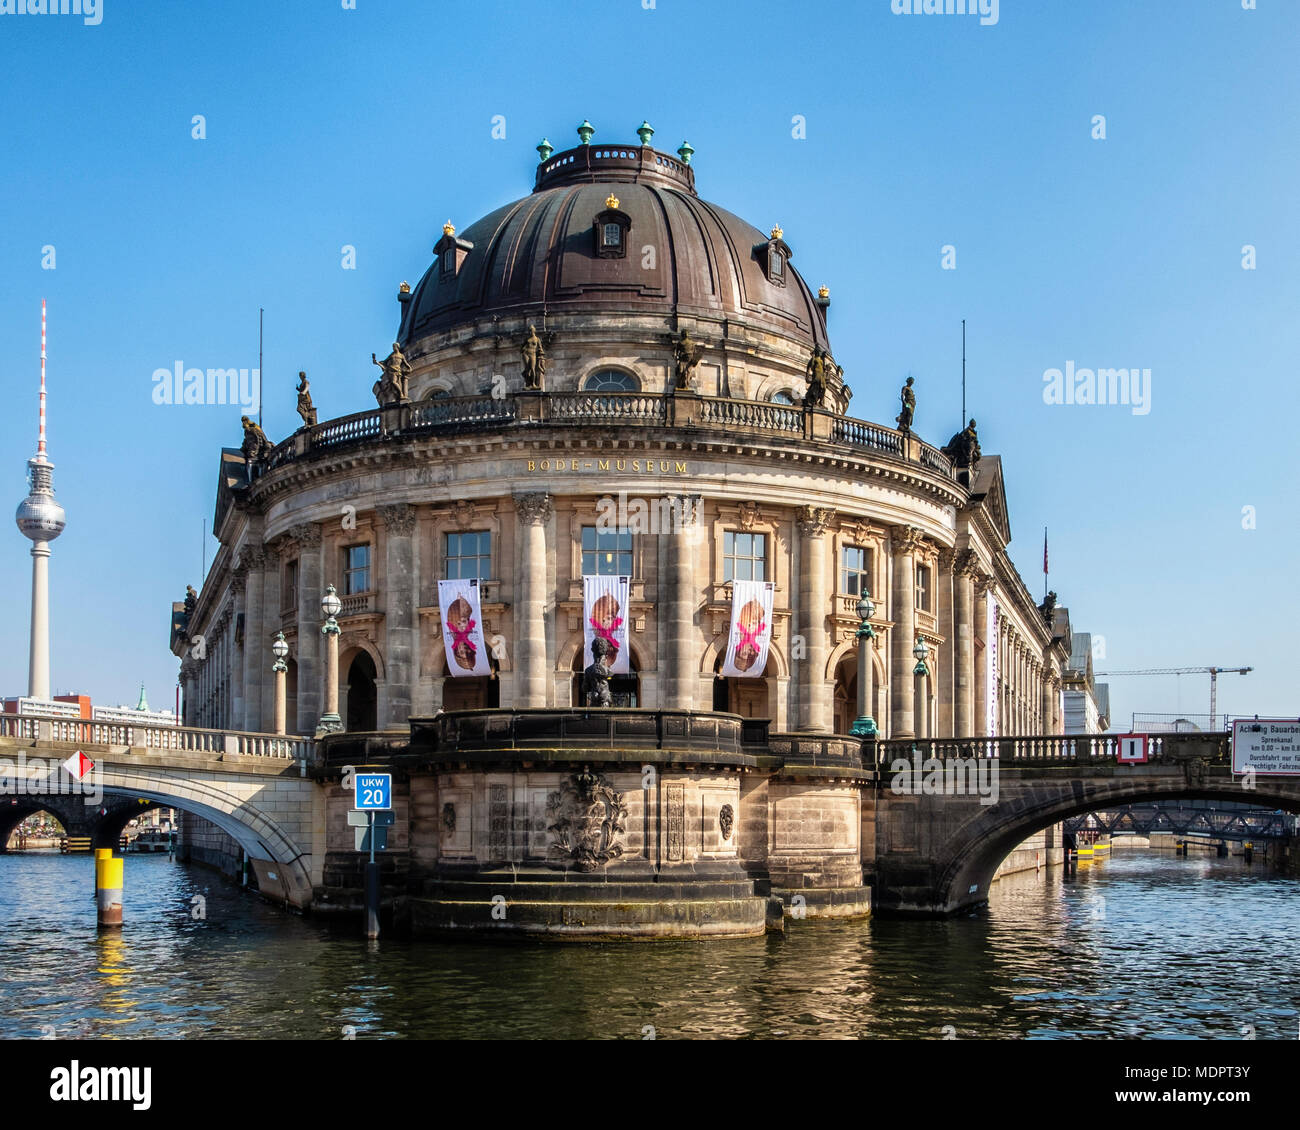 Berlin, Mitte, Museum Island. Bode Museum exterior & façade.Historic baroque building  on Spree river housing collections of Sculpture Byzantine Art,  - Stock Image